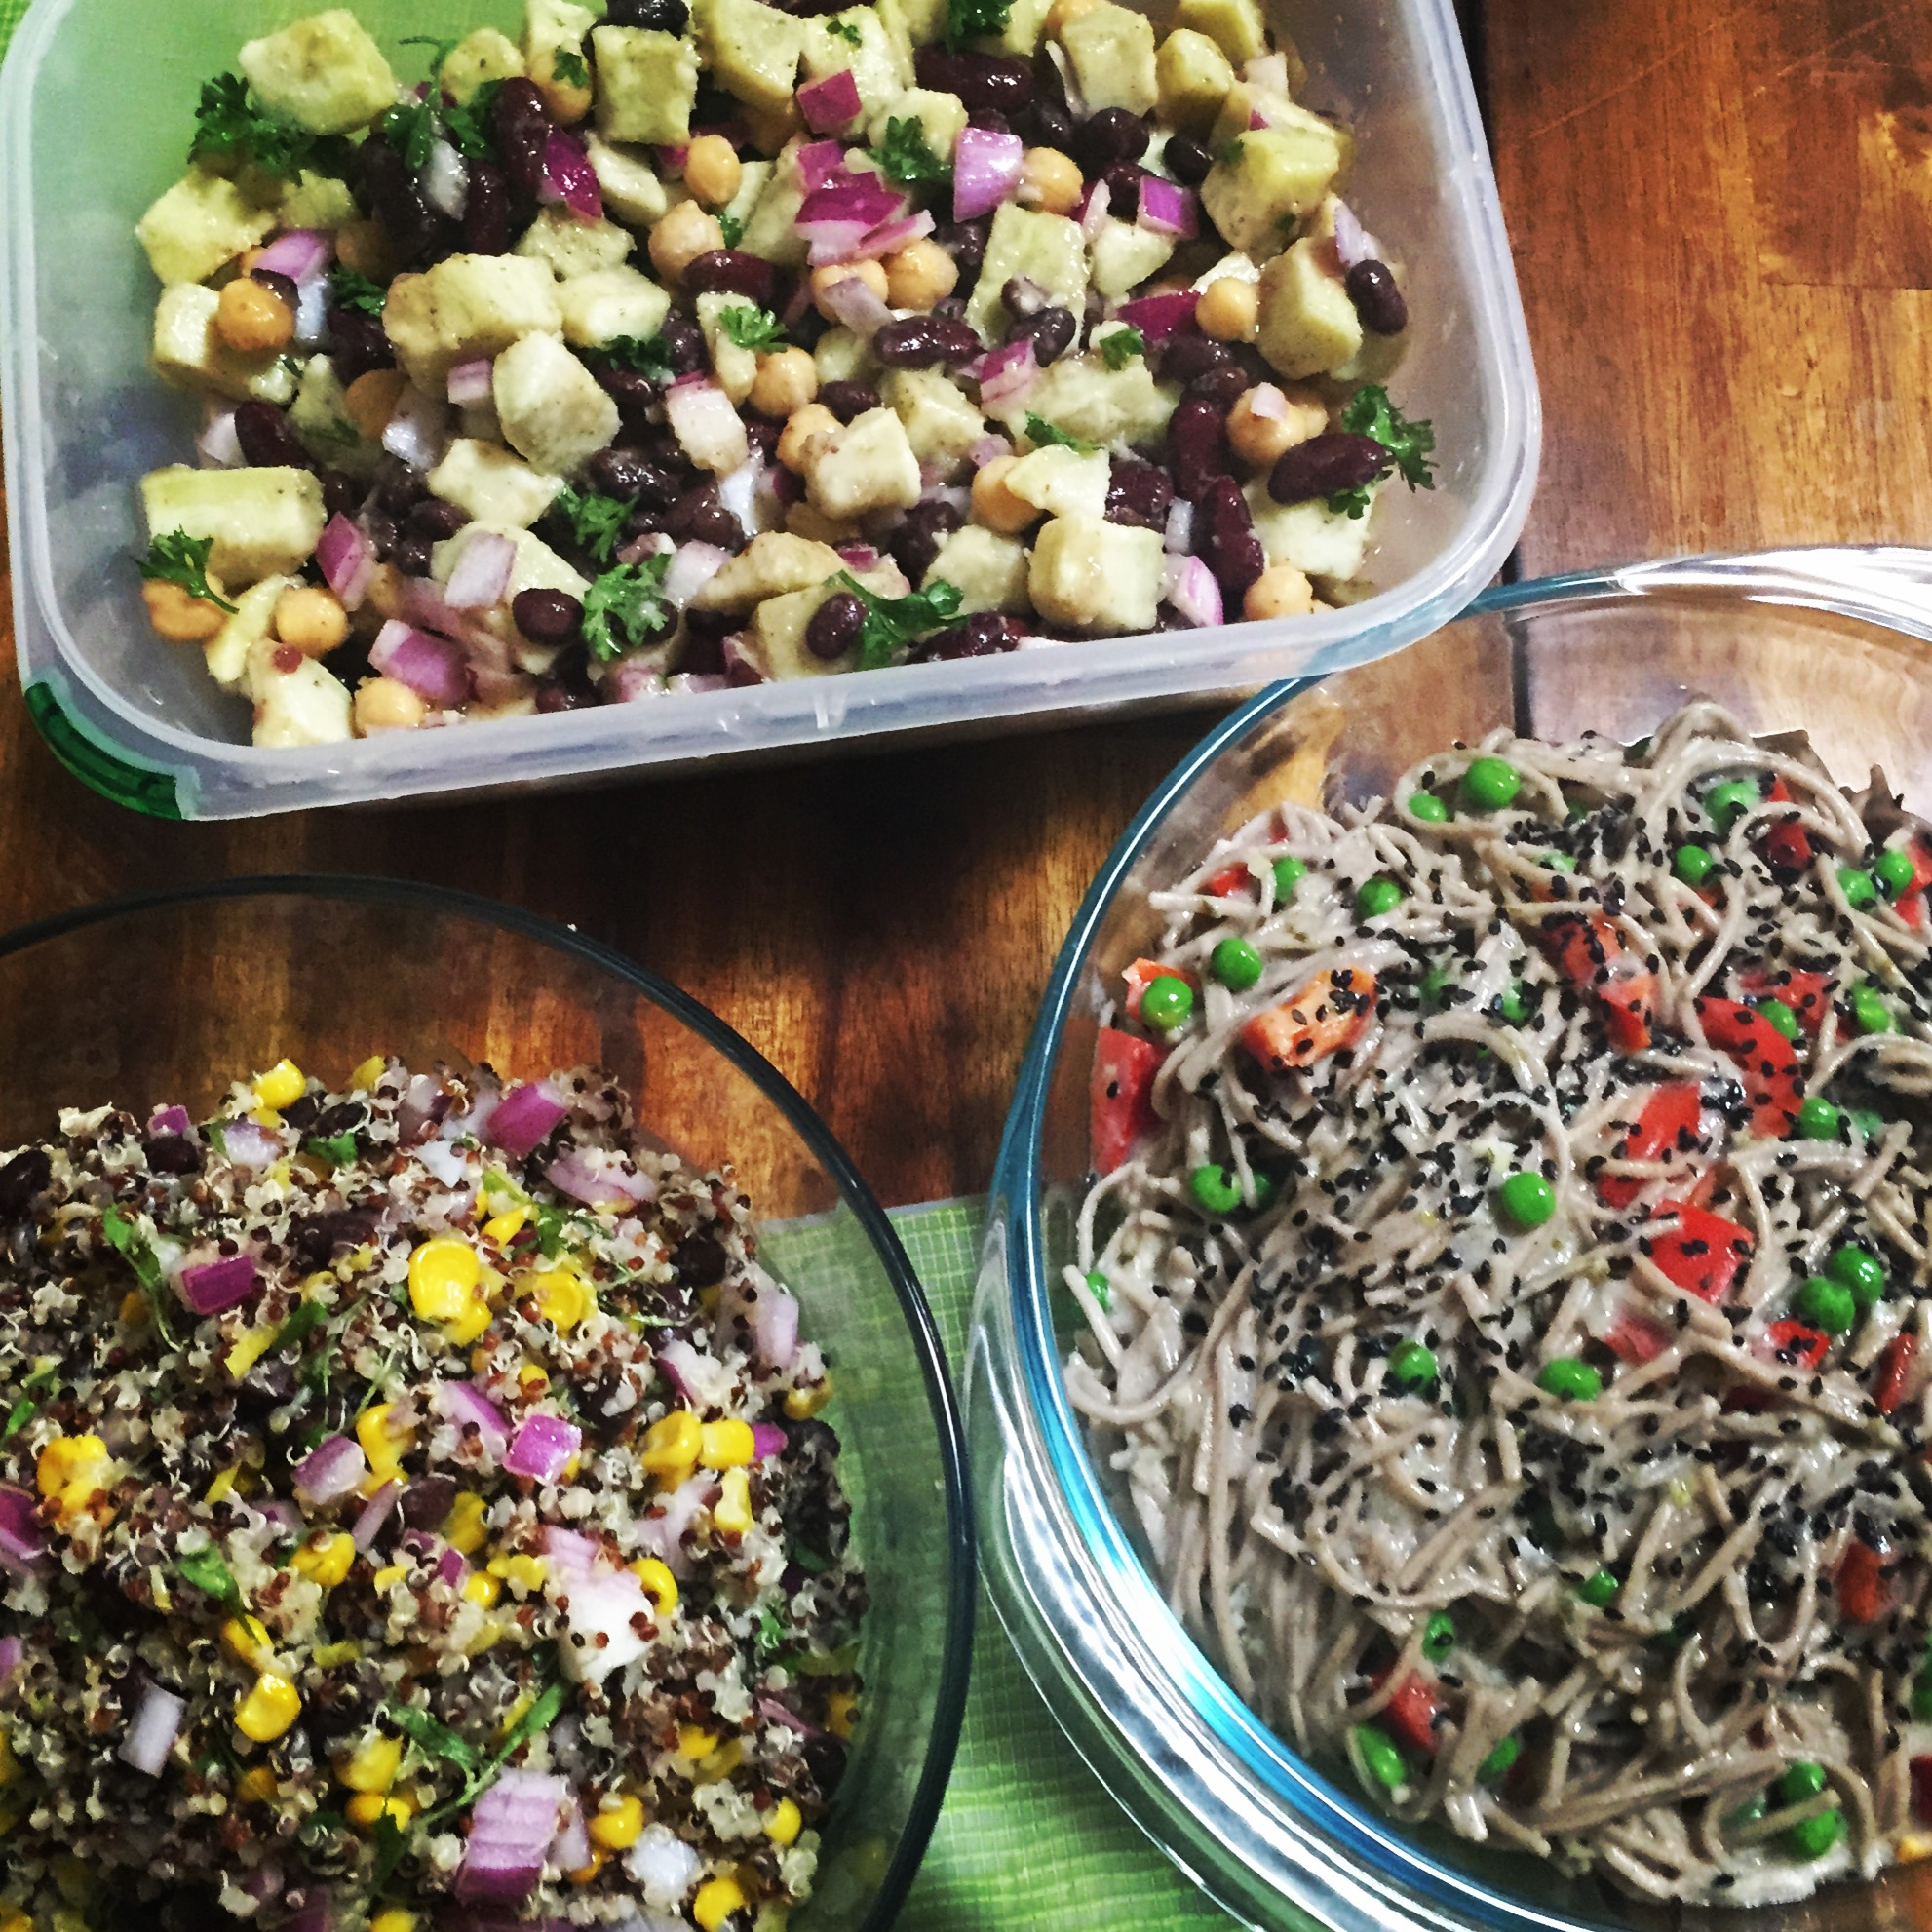 Summer Salad Recipes: Vegan & Gluten-Free